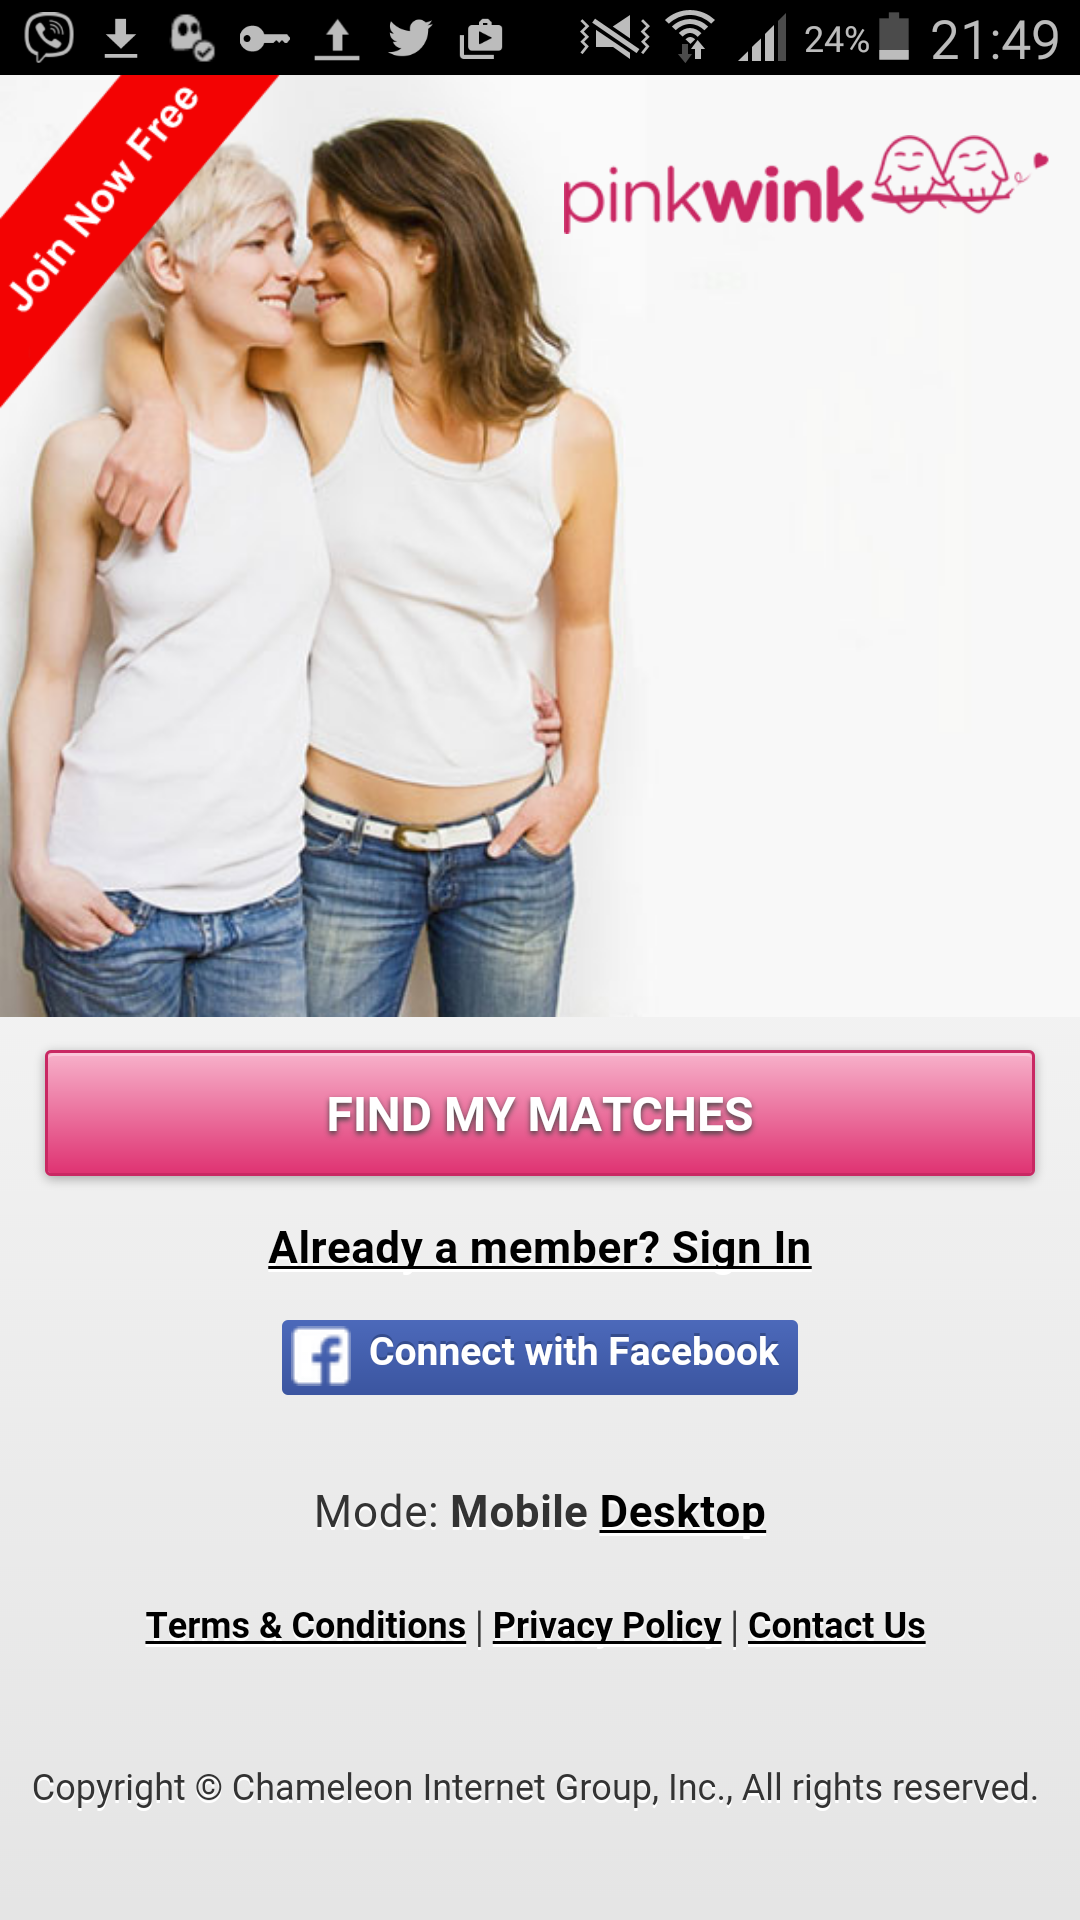 portola lesbian dating site Watch full episodes and clips of primetime, daytime, late night and classic shows on cbscom talk with other fans, catch up with your favorite shows.